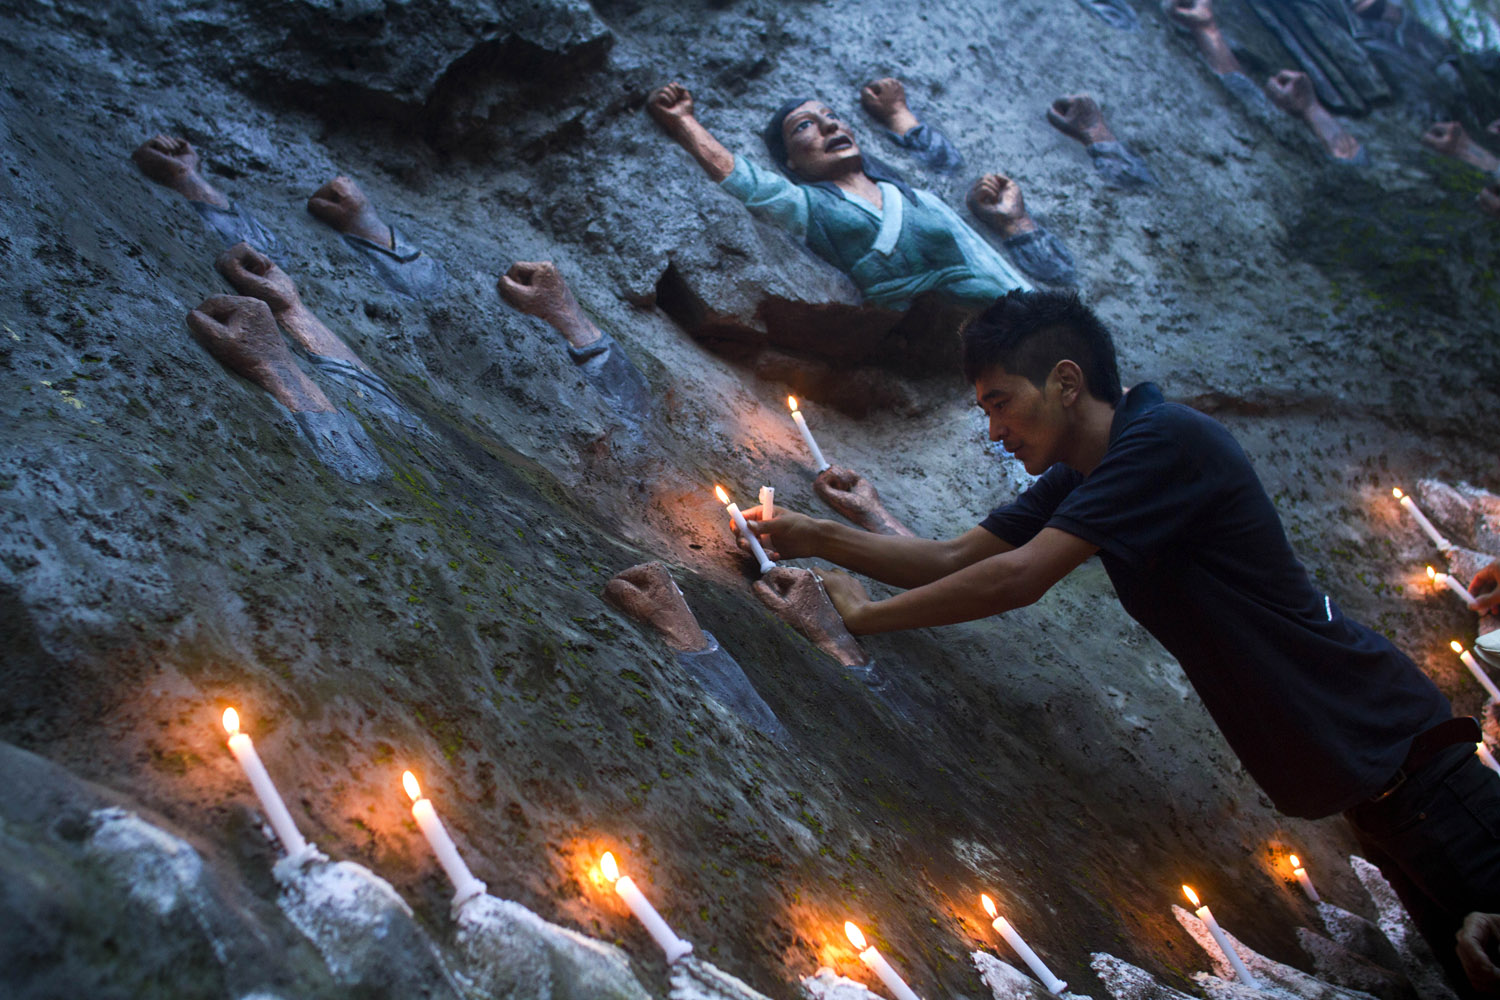 Aug. 14, 2012. An exiled Tibetan places candles on a sculpture known as Tibetan Martyrs' Wall, during a candlelit vigil in Dharmsala, India.